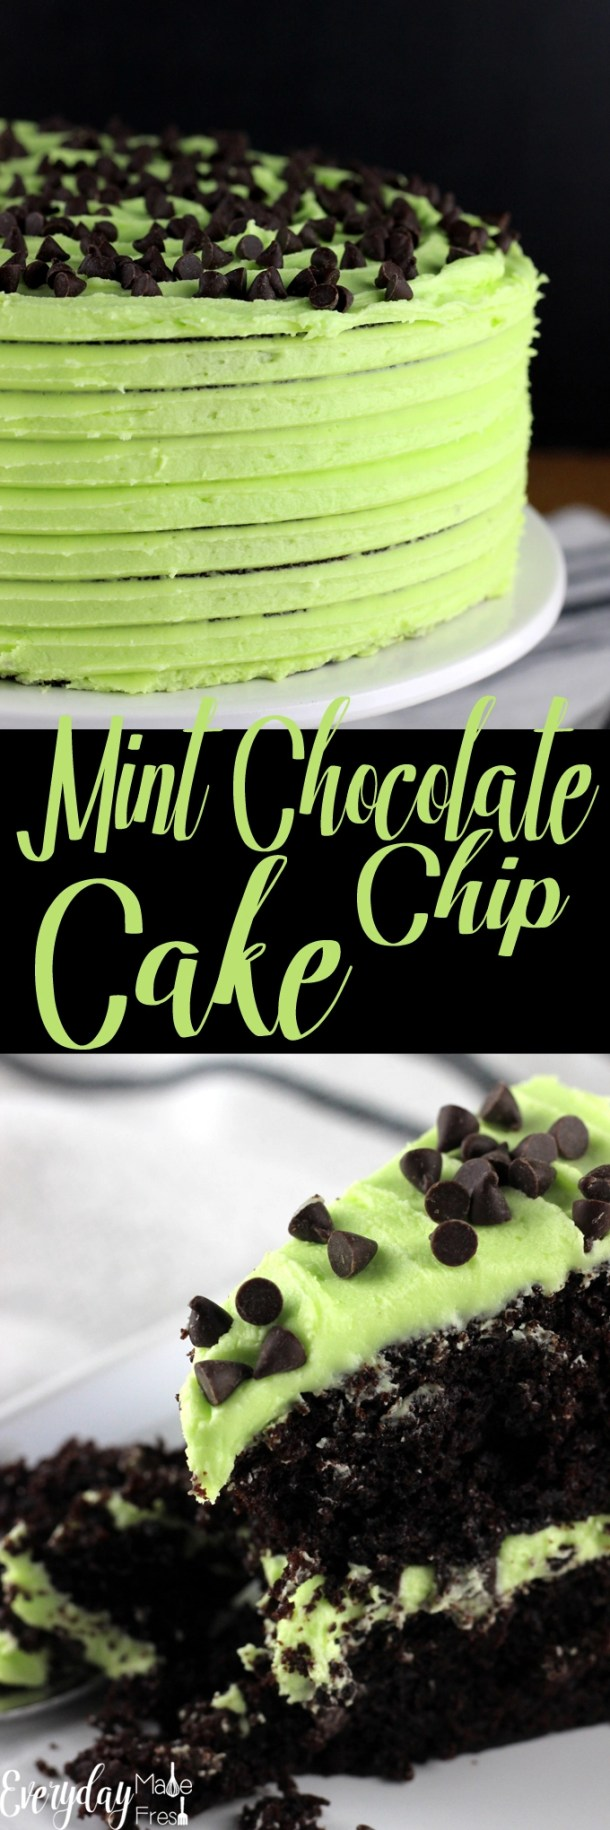 This is the only Mint Chocolate Chip Cake recipe you will ever need! Dark chocolate cake is the perfect vessel for this minty buttercream. YUM! | EverydayMadeFresh.com